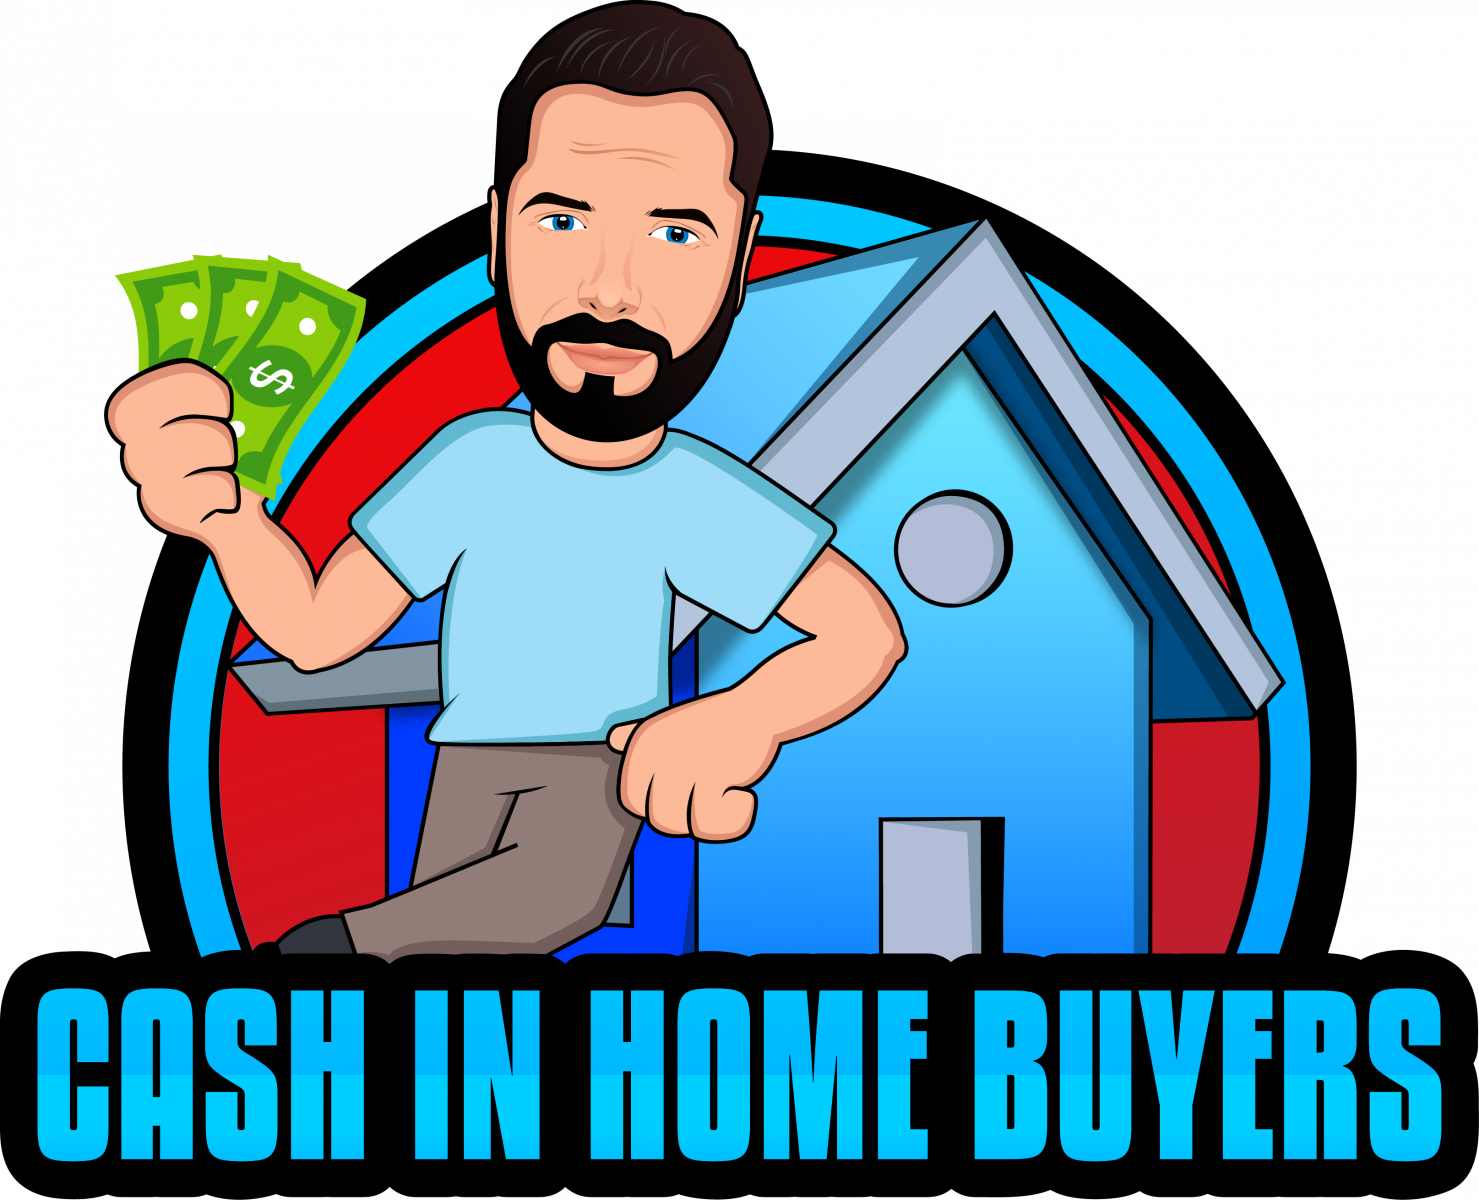 Cash In Home Buyers logo